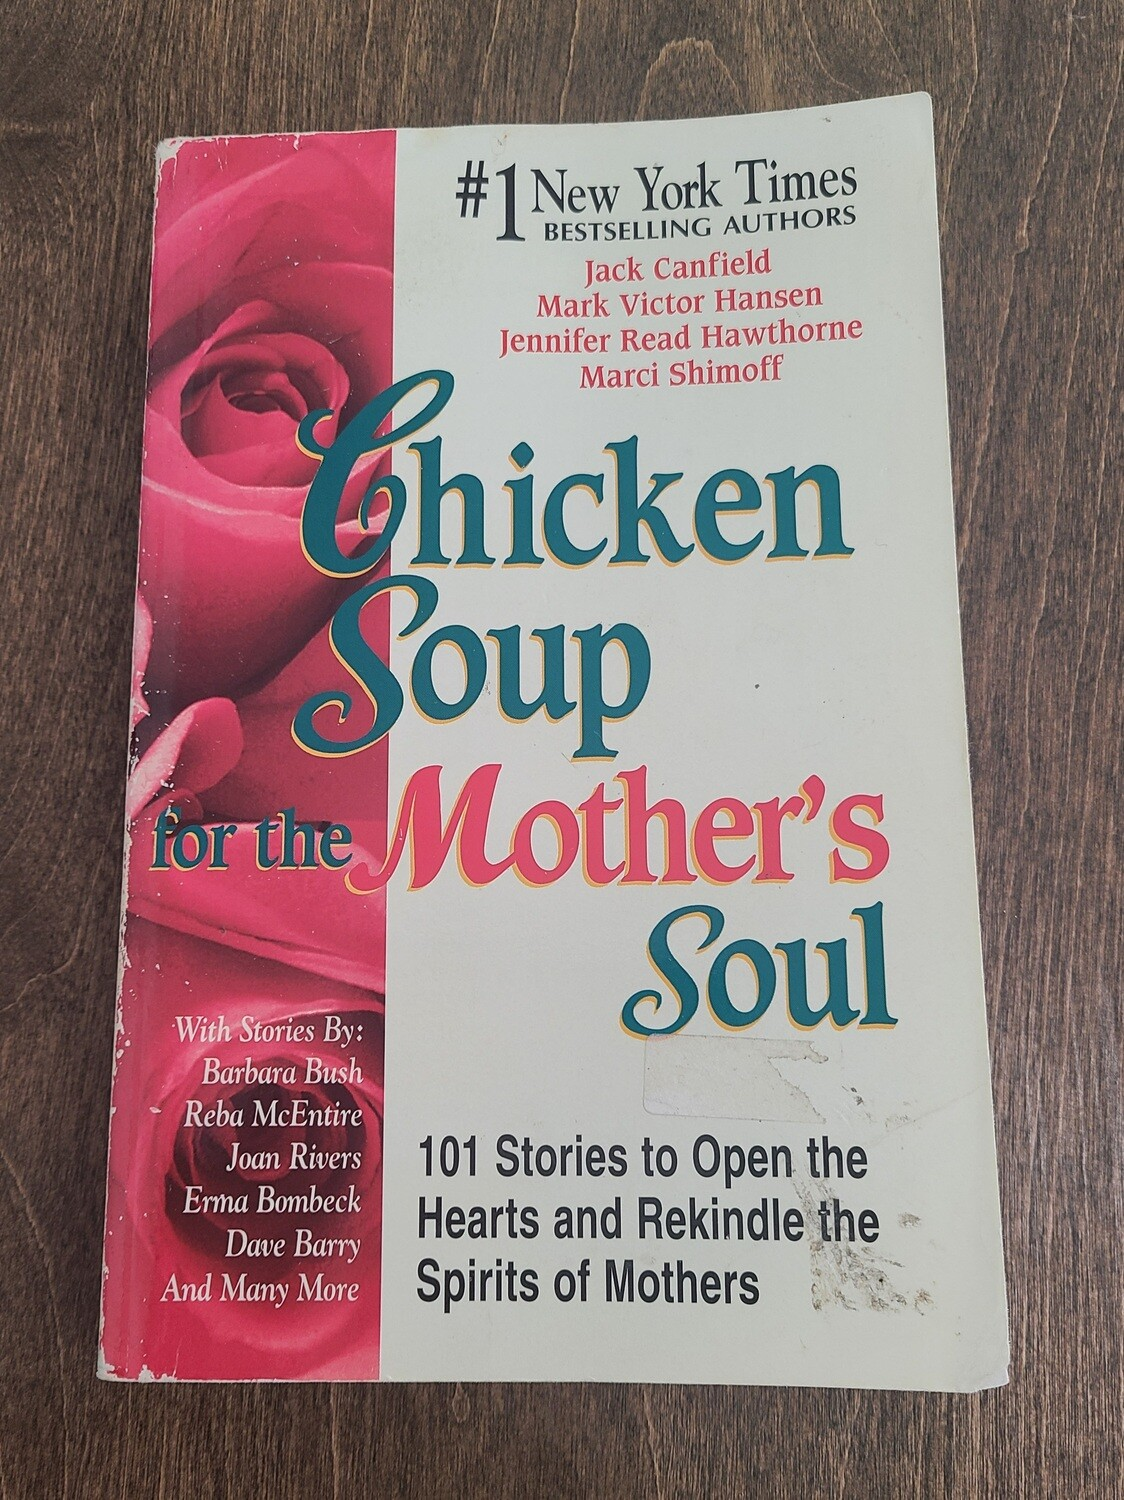 Chicken Soup for the Mother's Soul by Jack Canfield, Mark Victor Hansen, Jennifer Read Hawthorne, & Marci Shimoff